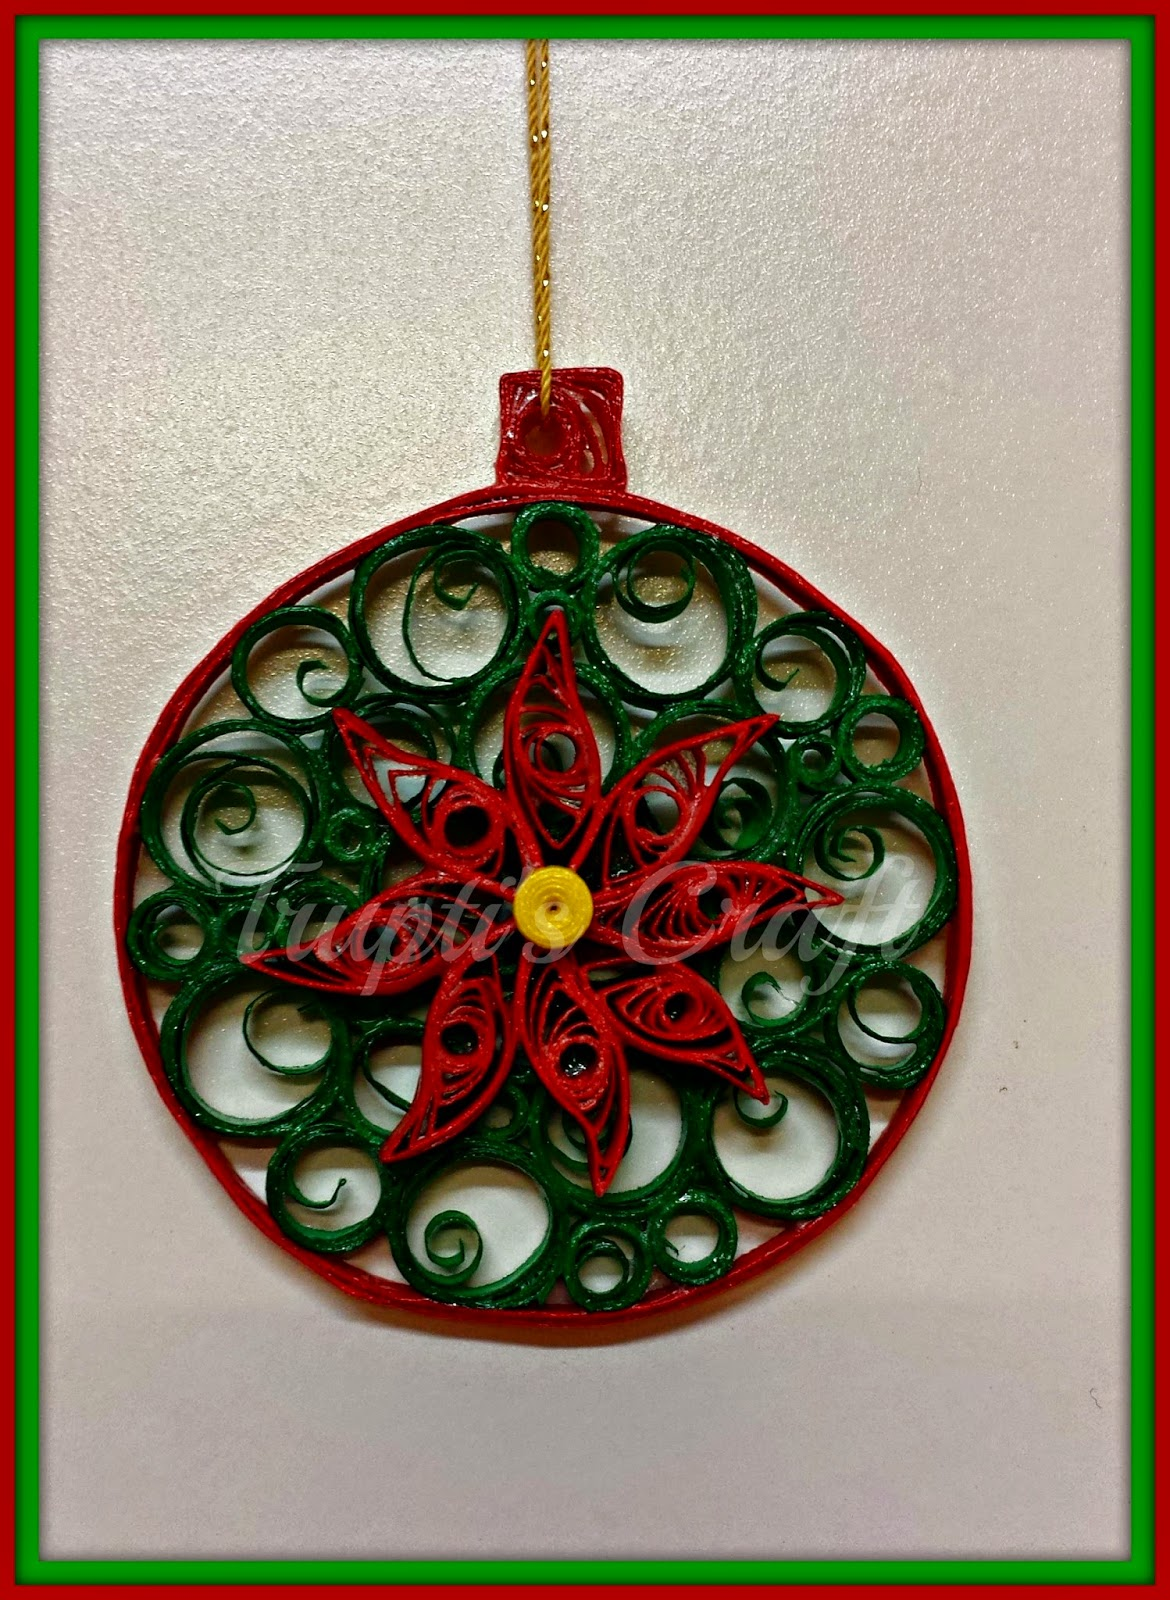 Trupti S Craft Paper Quilling Christmas Ornament